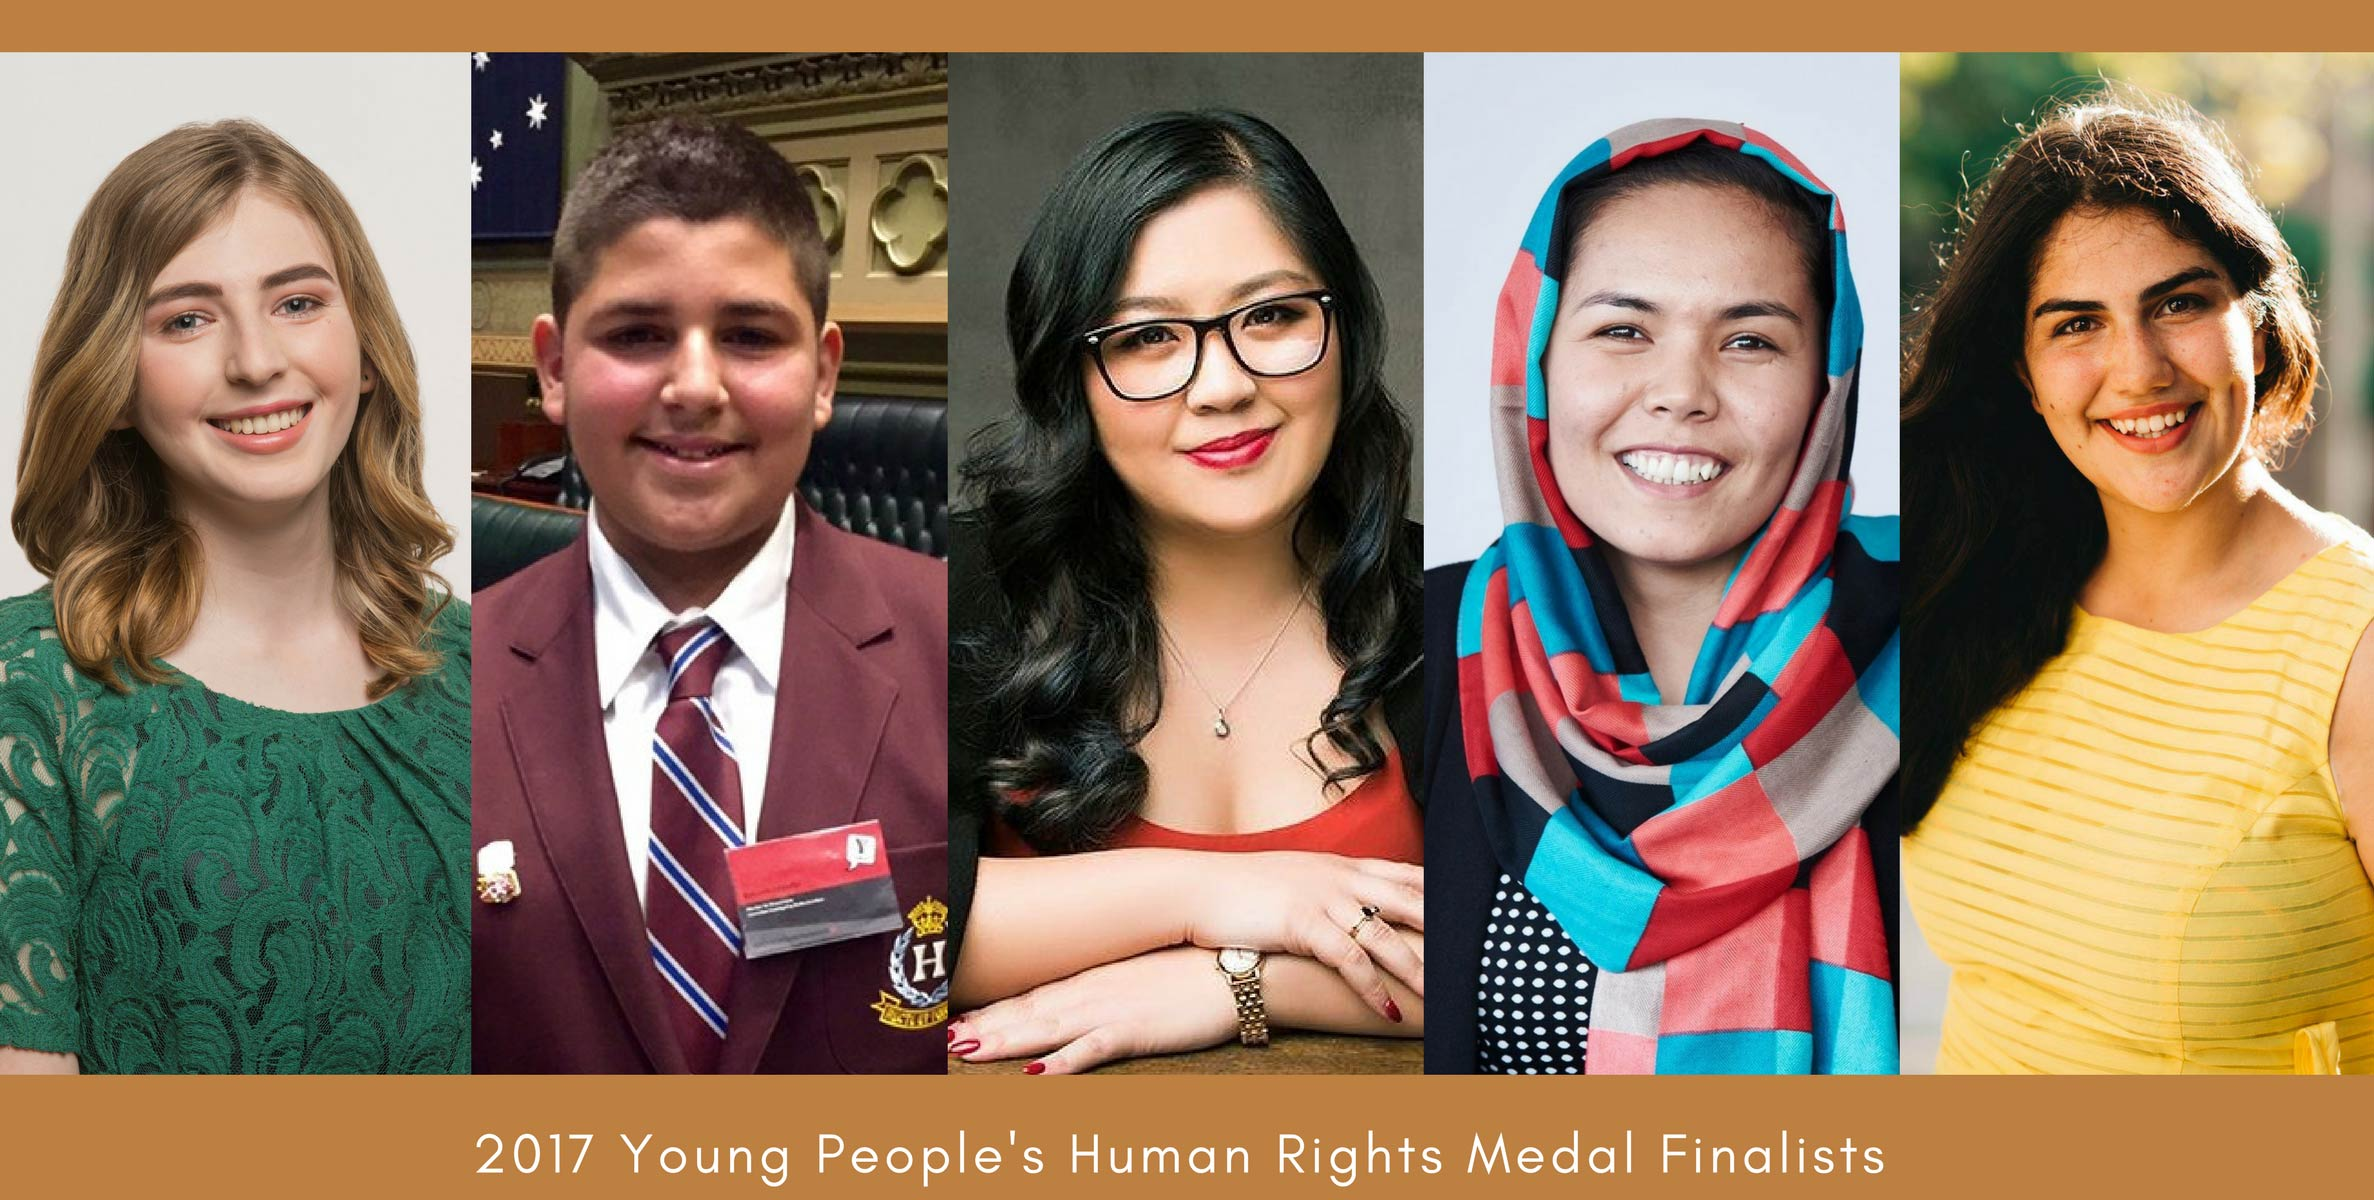 Finalists of the 2017 Young Persons Human Rights Medal